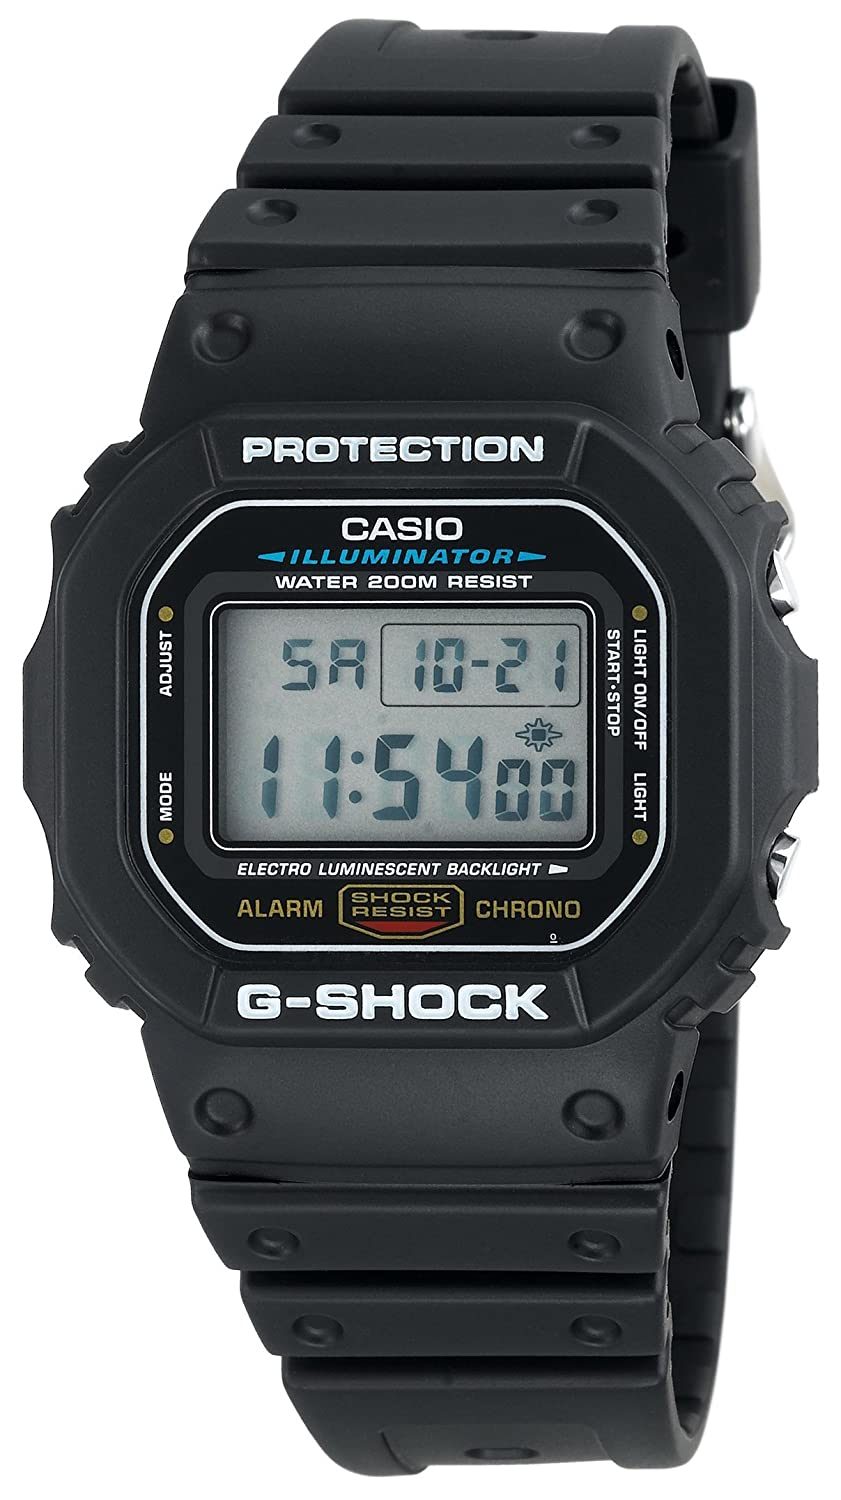 Casio Men&#8217;s DW5600E-1V G-Shock Classic Digital Watch